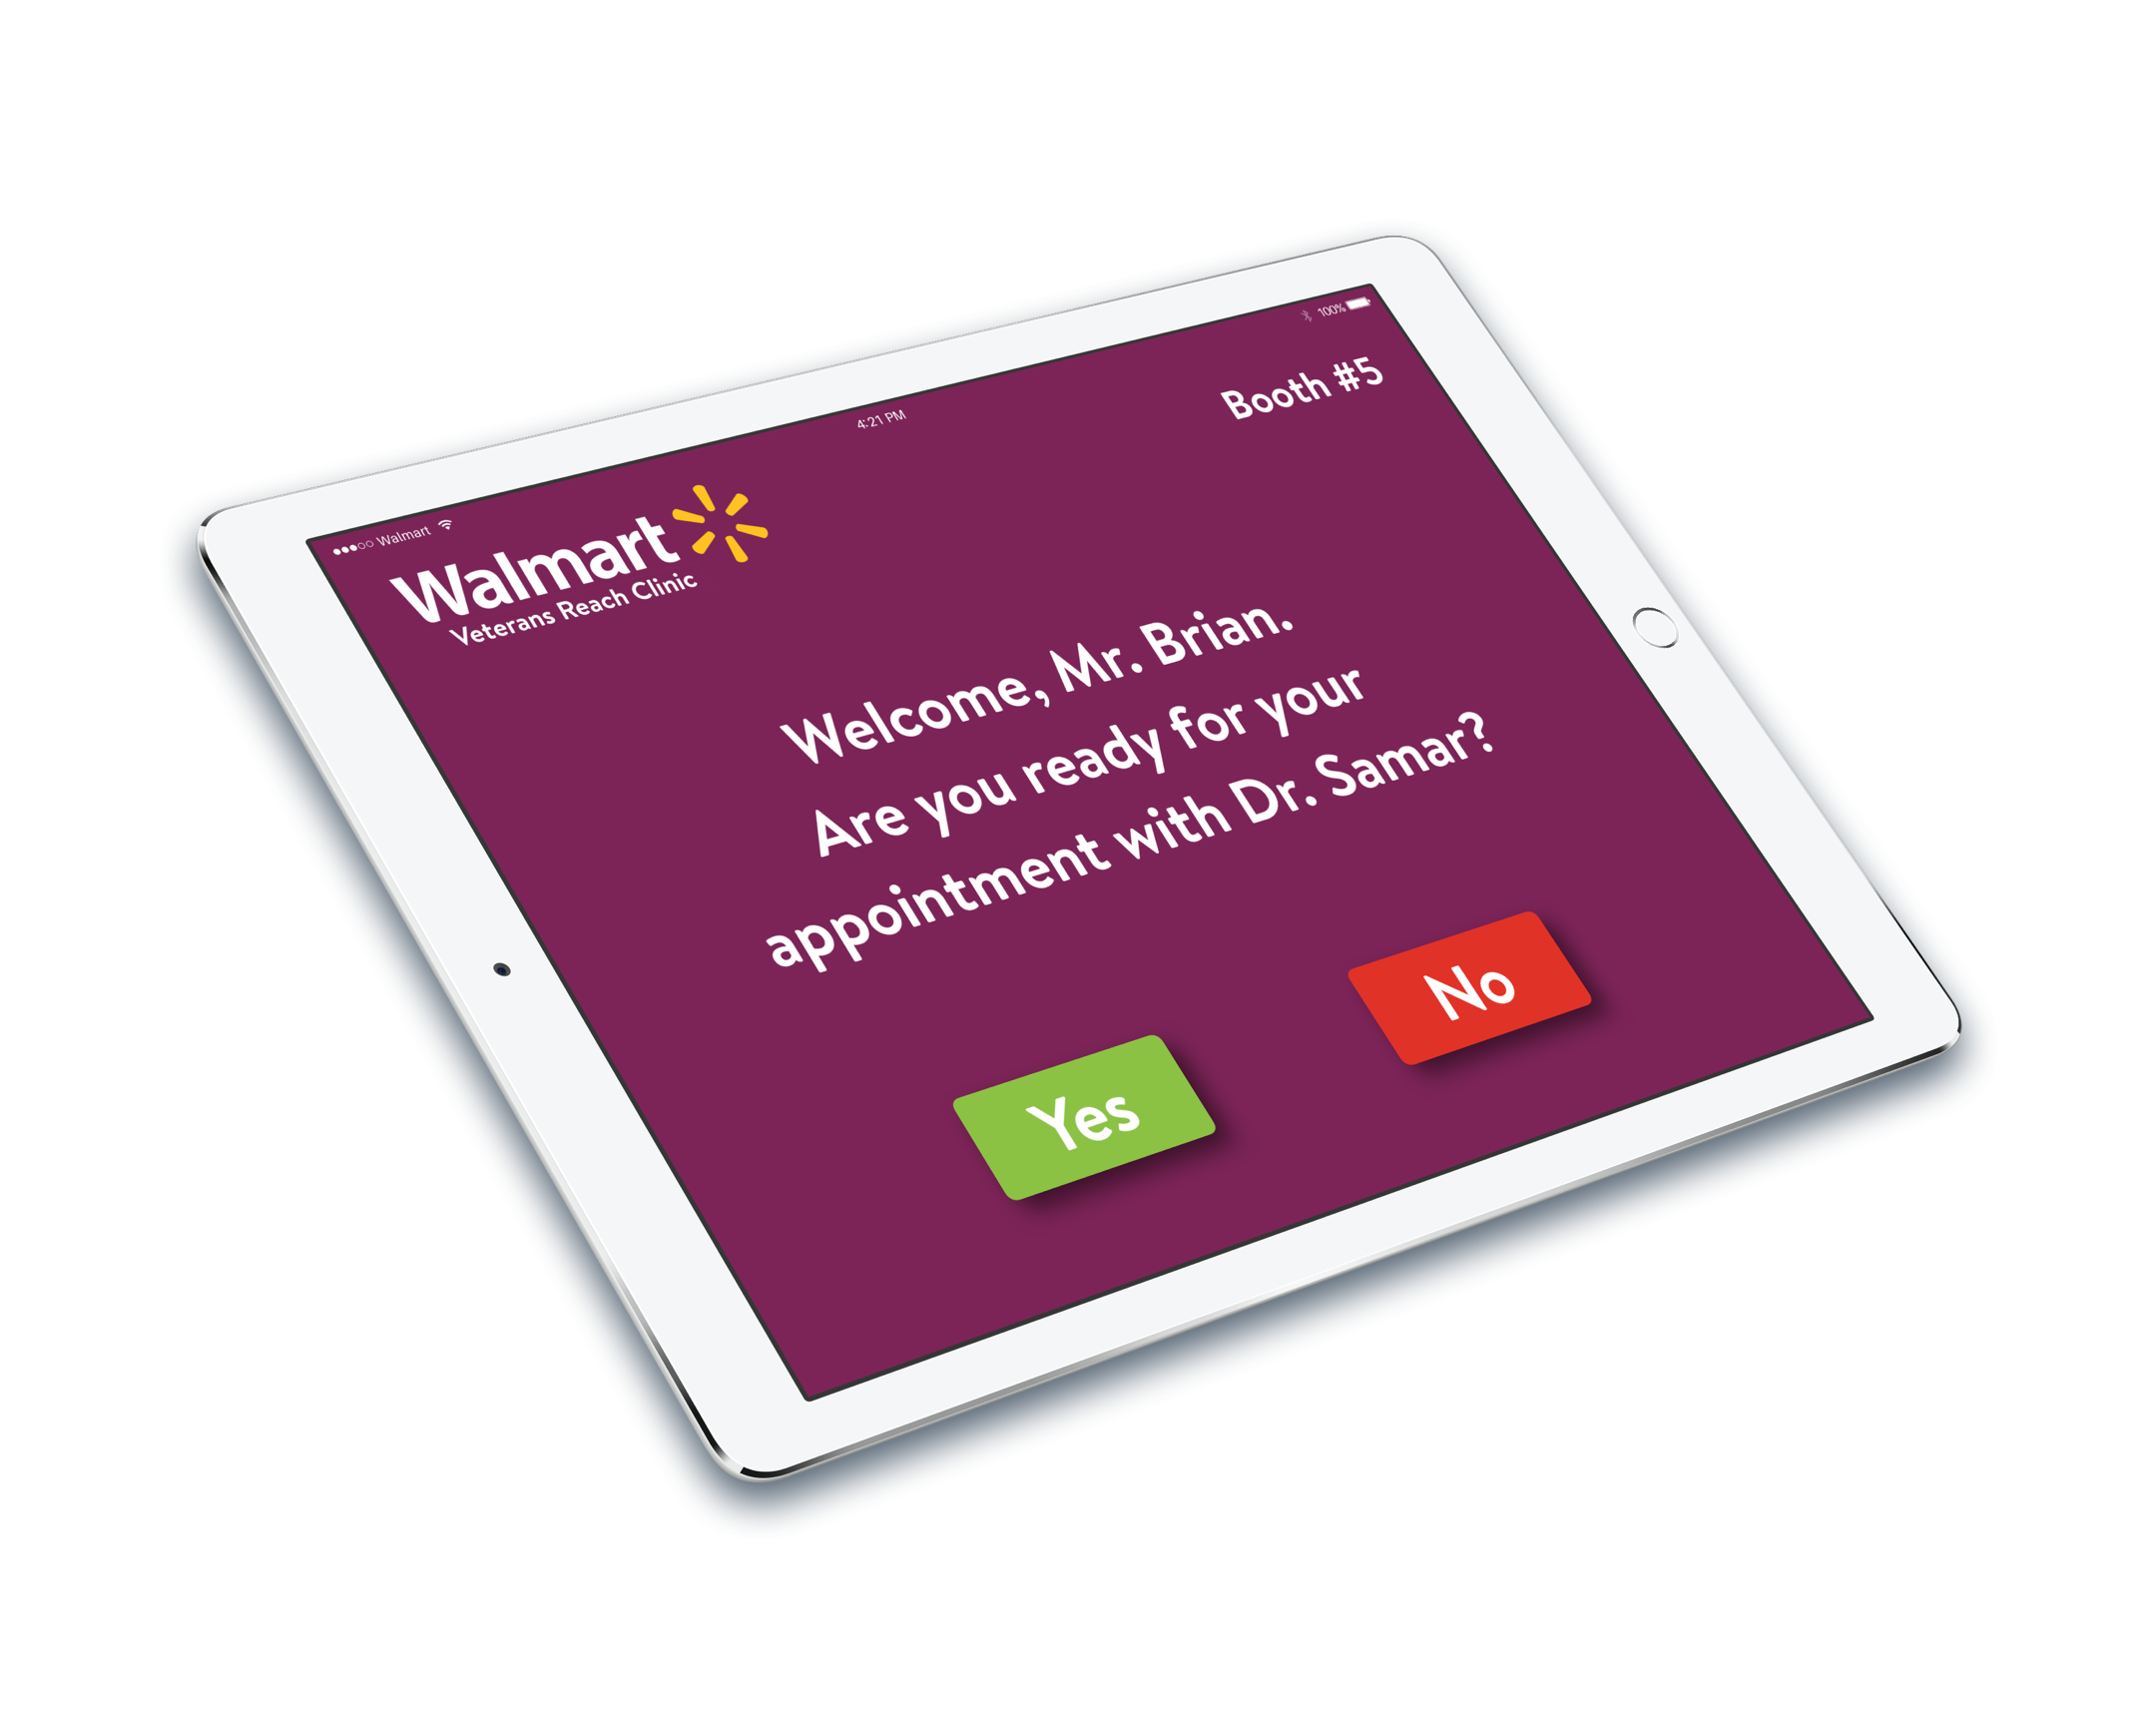 A Walmart branded iPad that welcomes Mr. Brian to his appointment with Dr. Samar